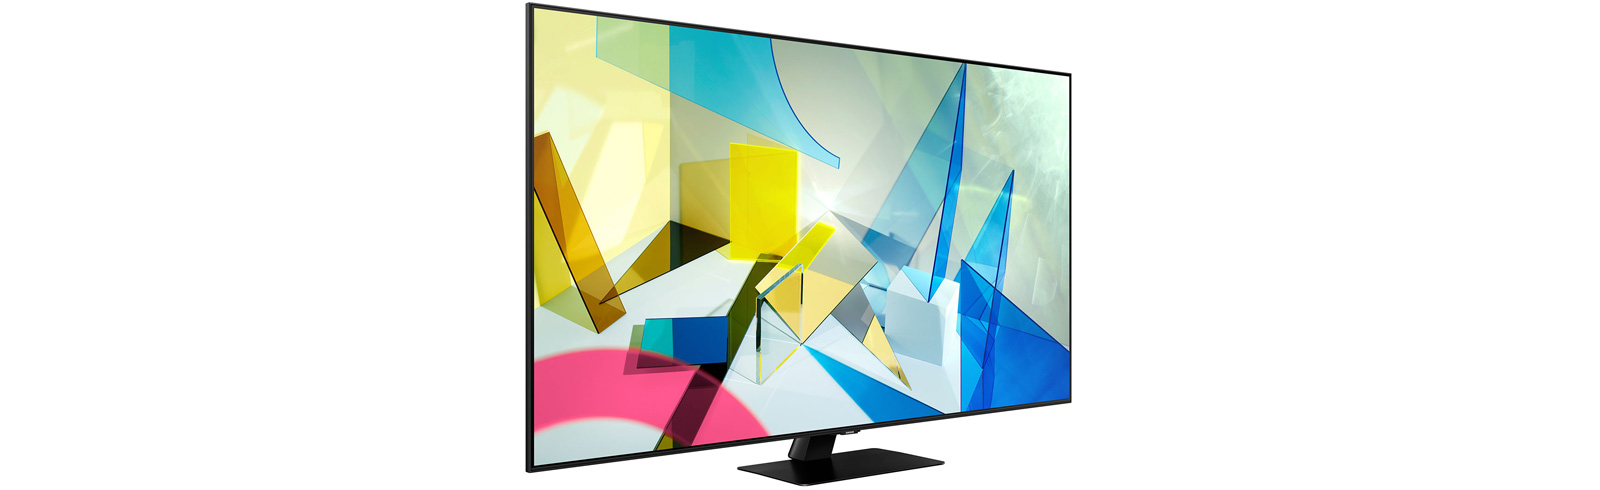 """Samsung QN50Q80T is a 50"""" model from the Q80T QLED TV series that was just released in the USA"""